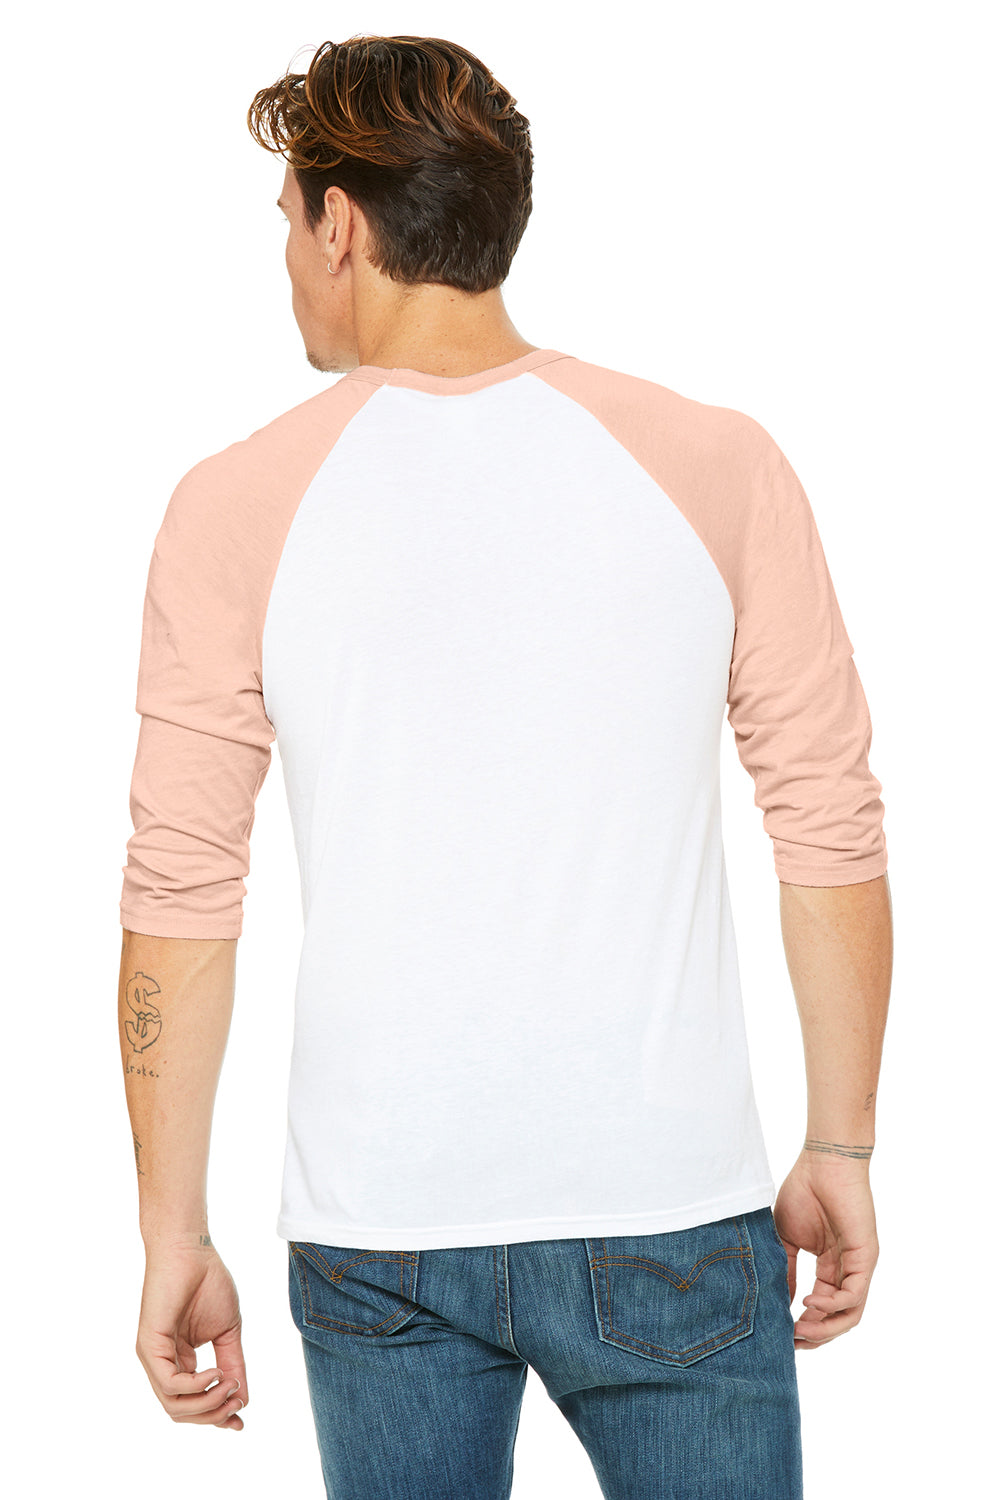 Bella + Canvas 3200 Mens 3/4 Sleeve Crewneck T-Shirt White/Heather Peach Back